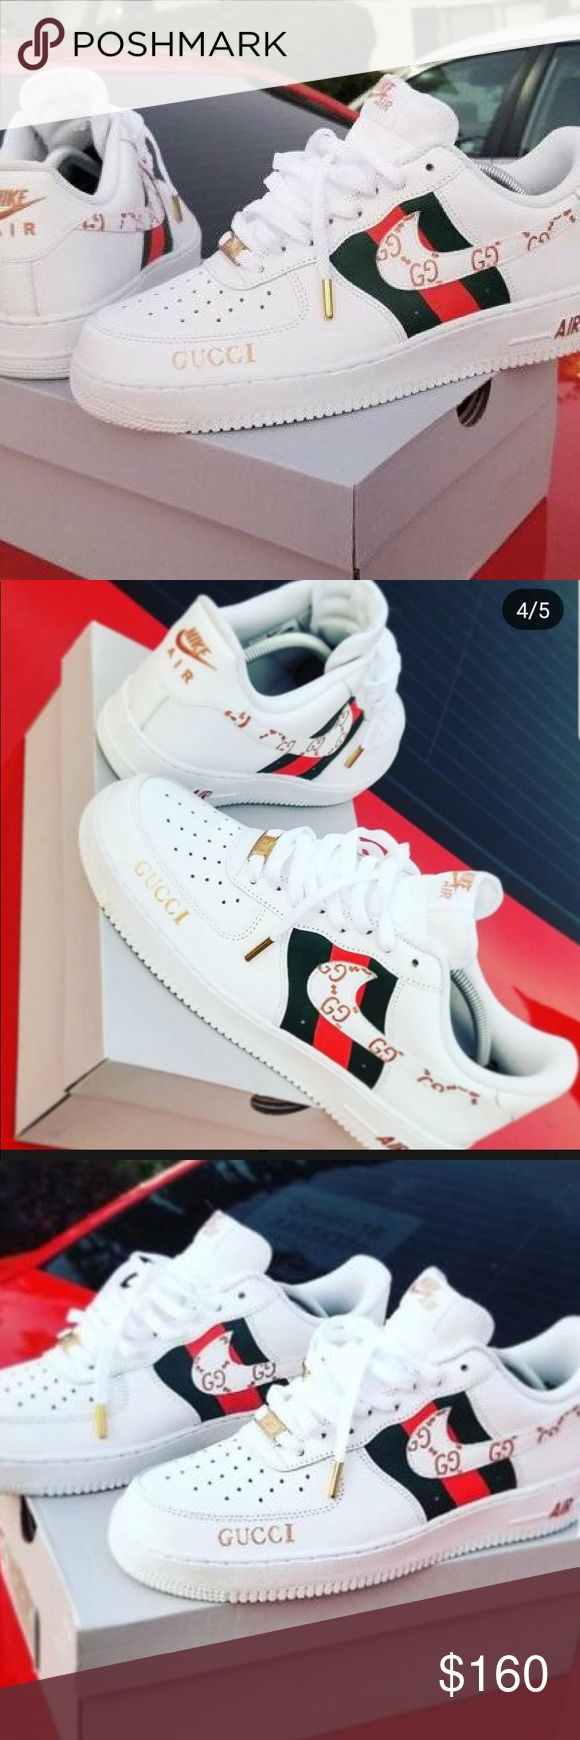 Custom Painted Nike Air Force 1 x Gucci *THE GUCCI LOGOS